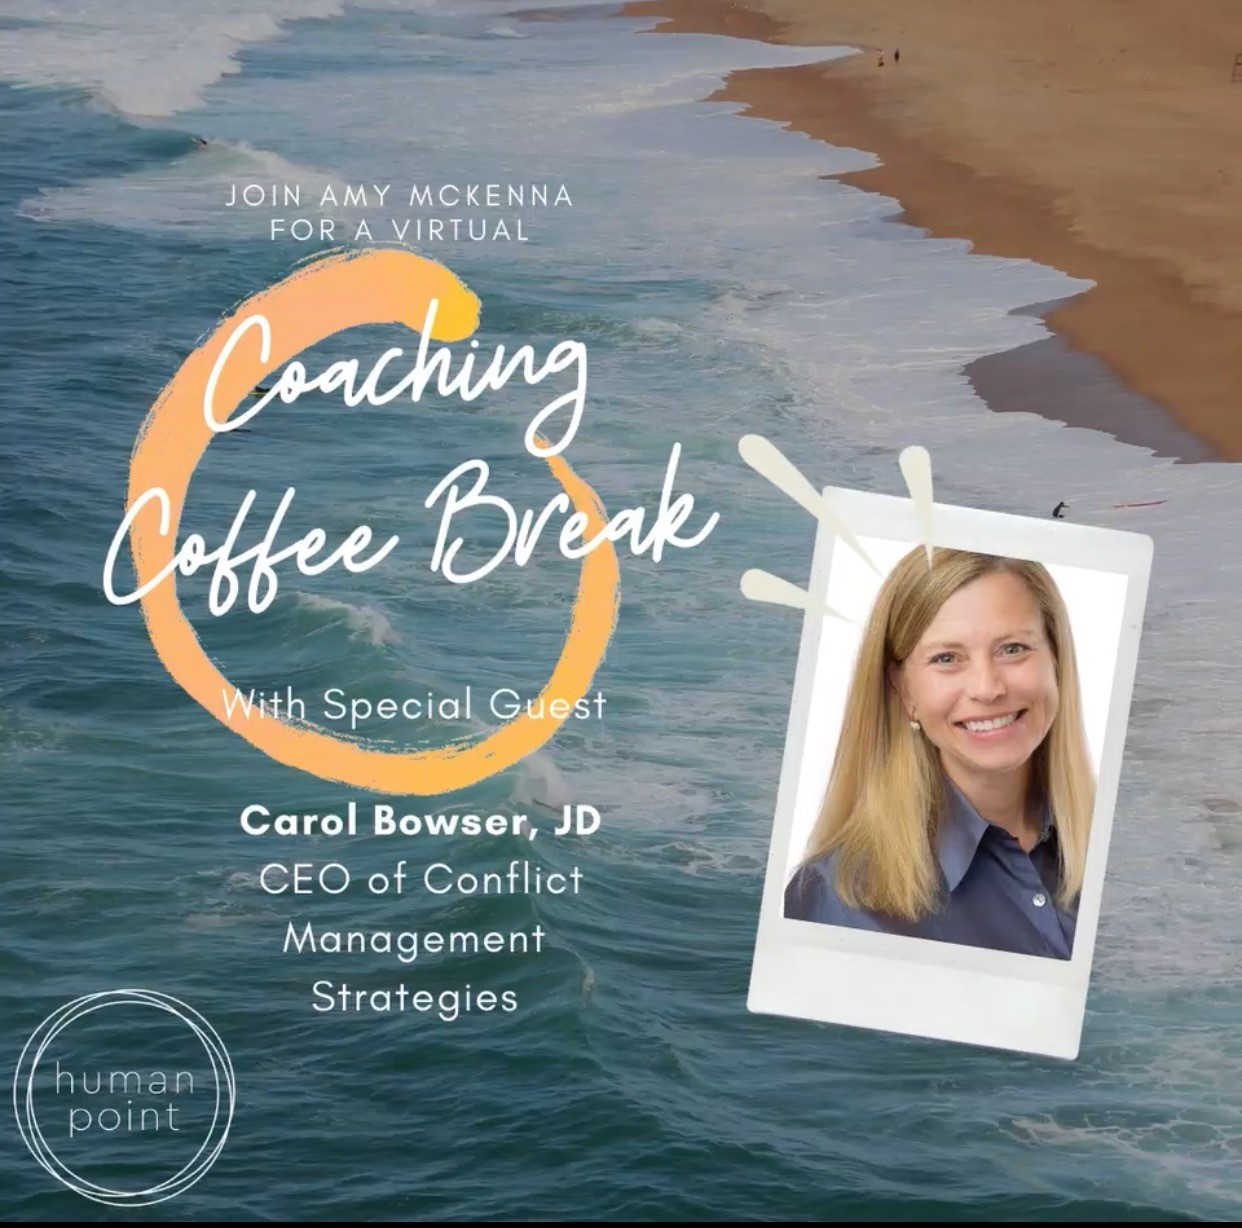 Coaching Coffee Break | 8.4.20 | Amy & Carol Bowser, JD